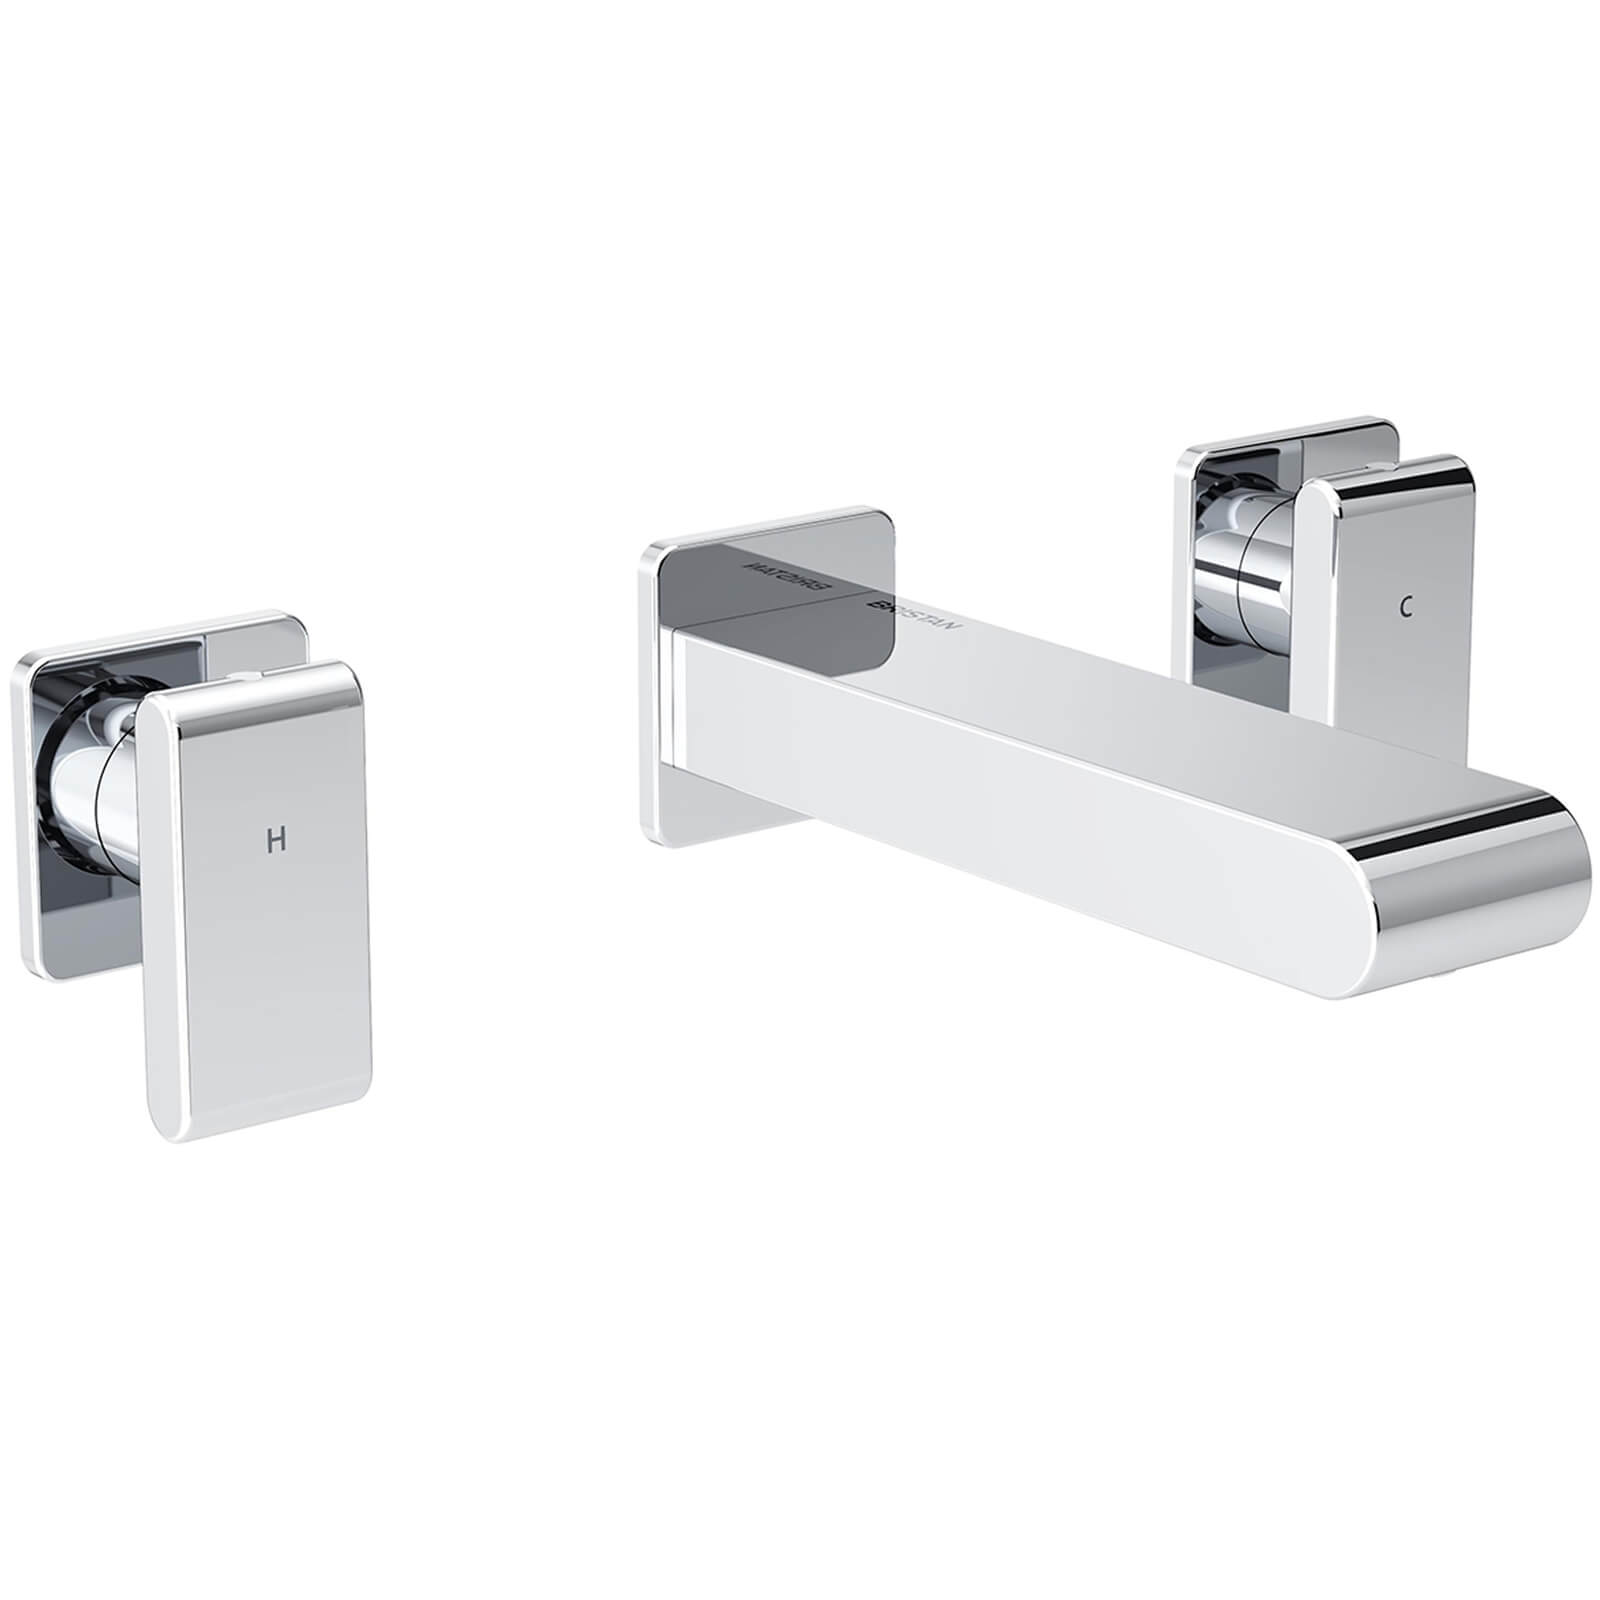 Bristan Pivot 3 Hole Wall Mounted Bath Filler Tap